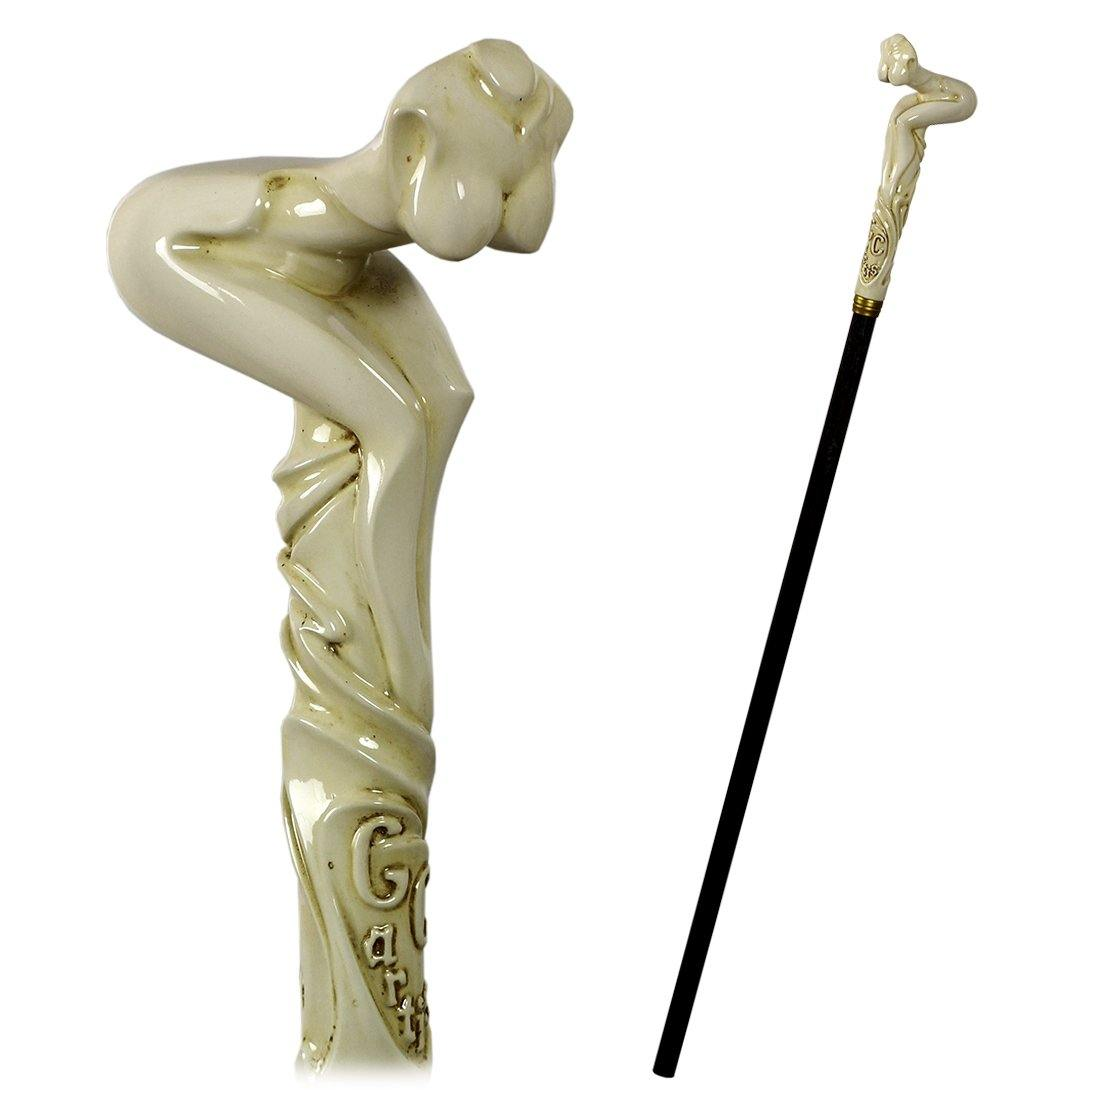 Nude Lady Sexy Girl Cane Walking Stick - GC-Artis Walking Sticks Canes